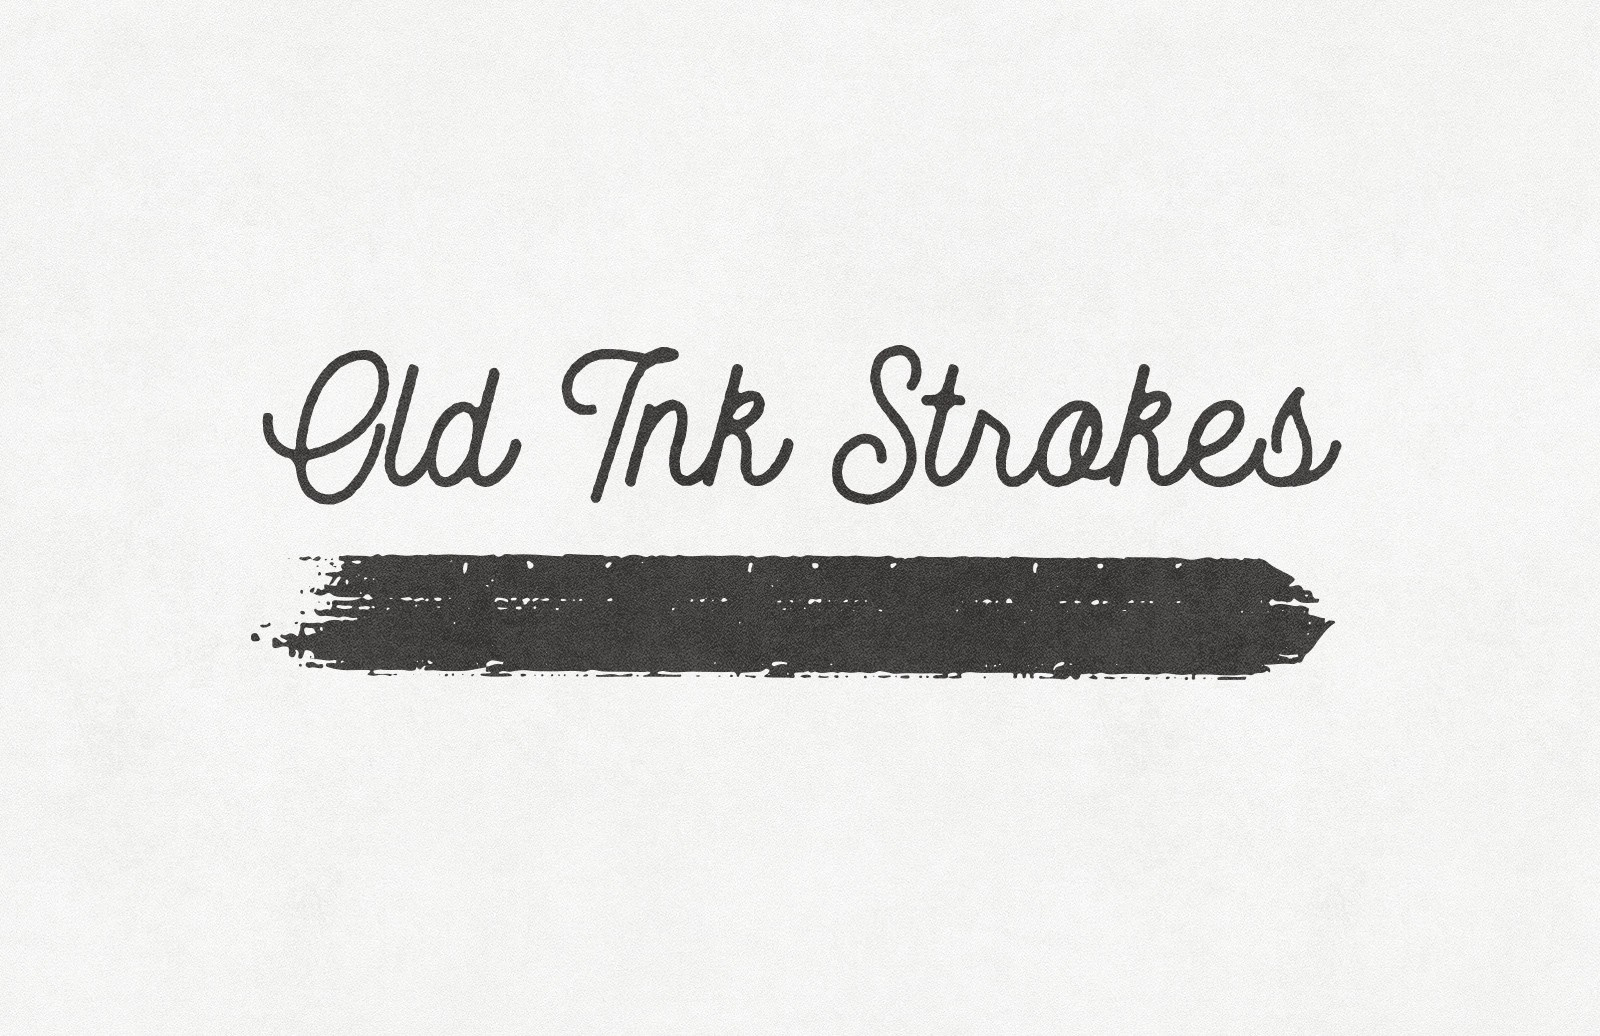 Old Ink Strokes – Illustrator Brushes